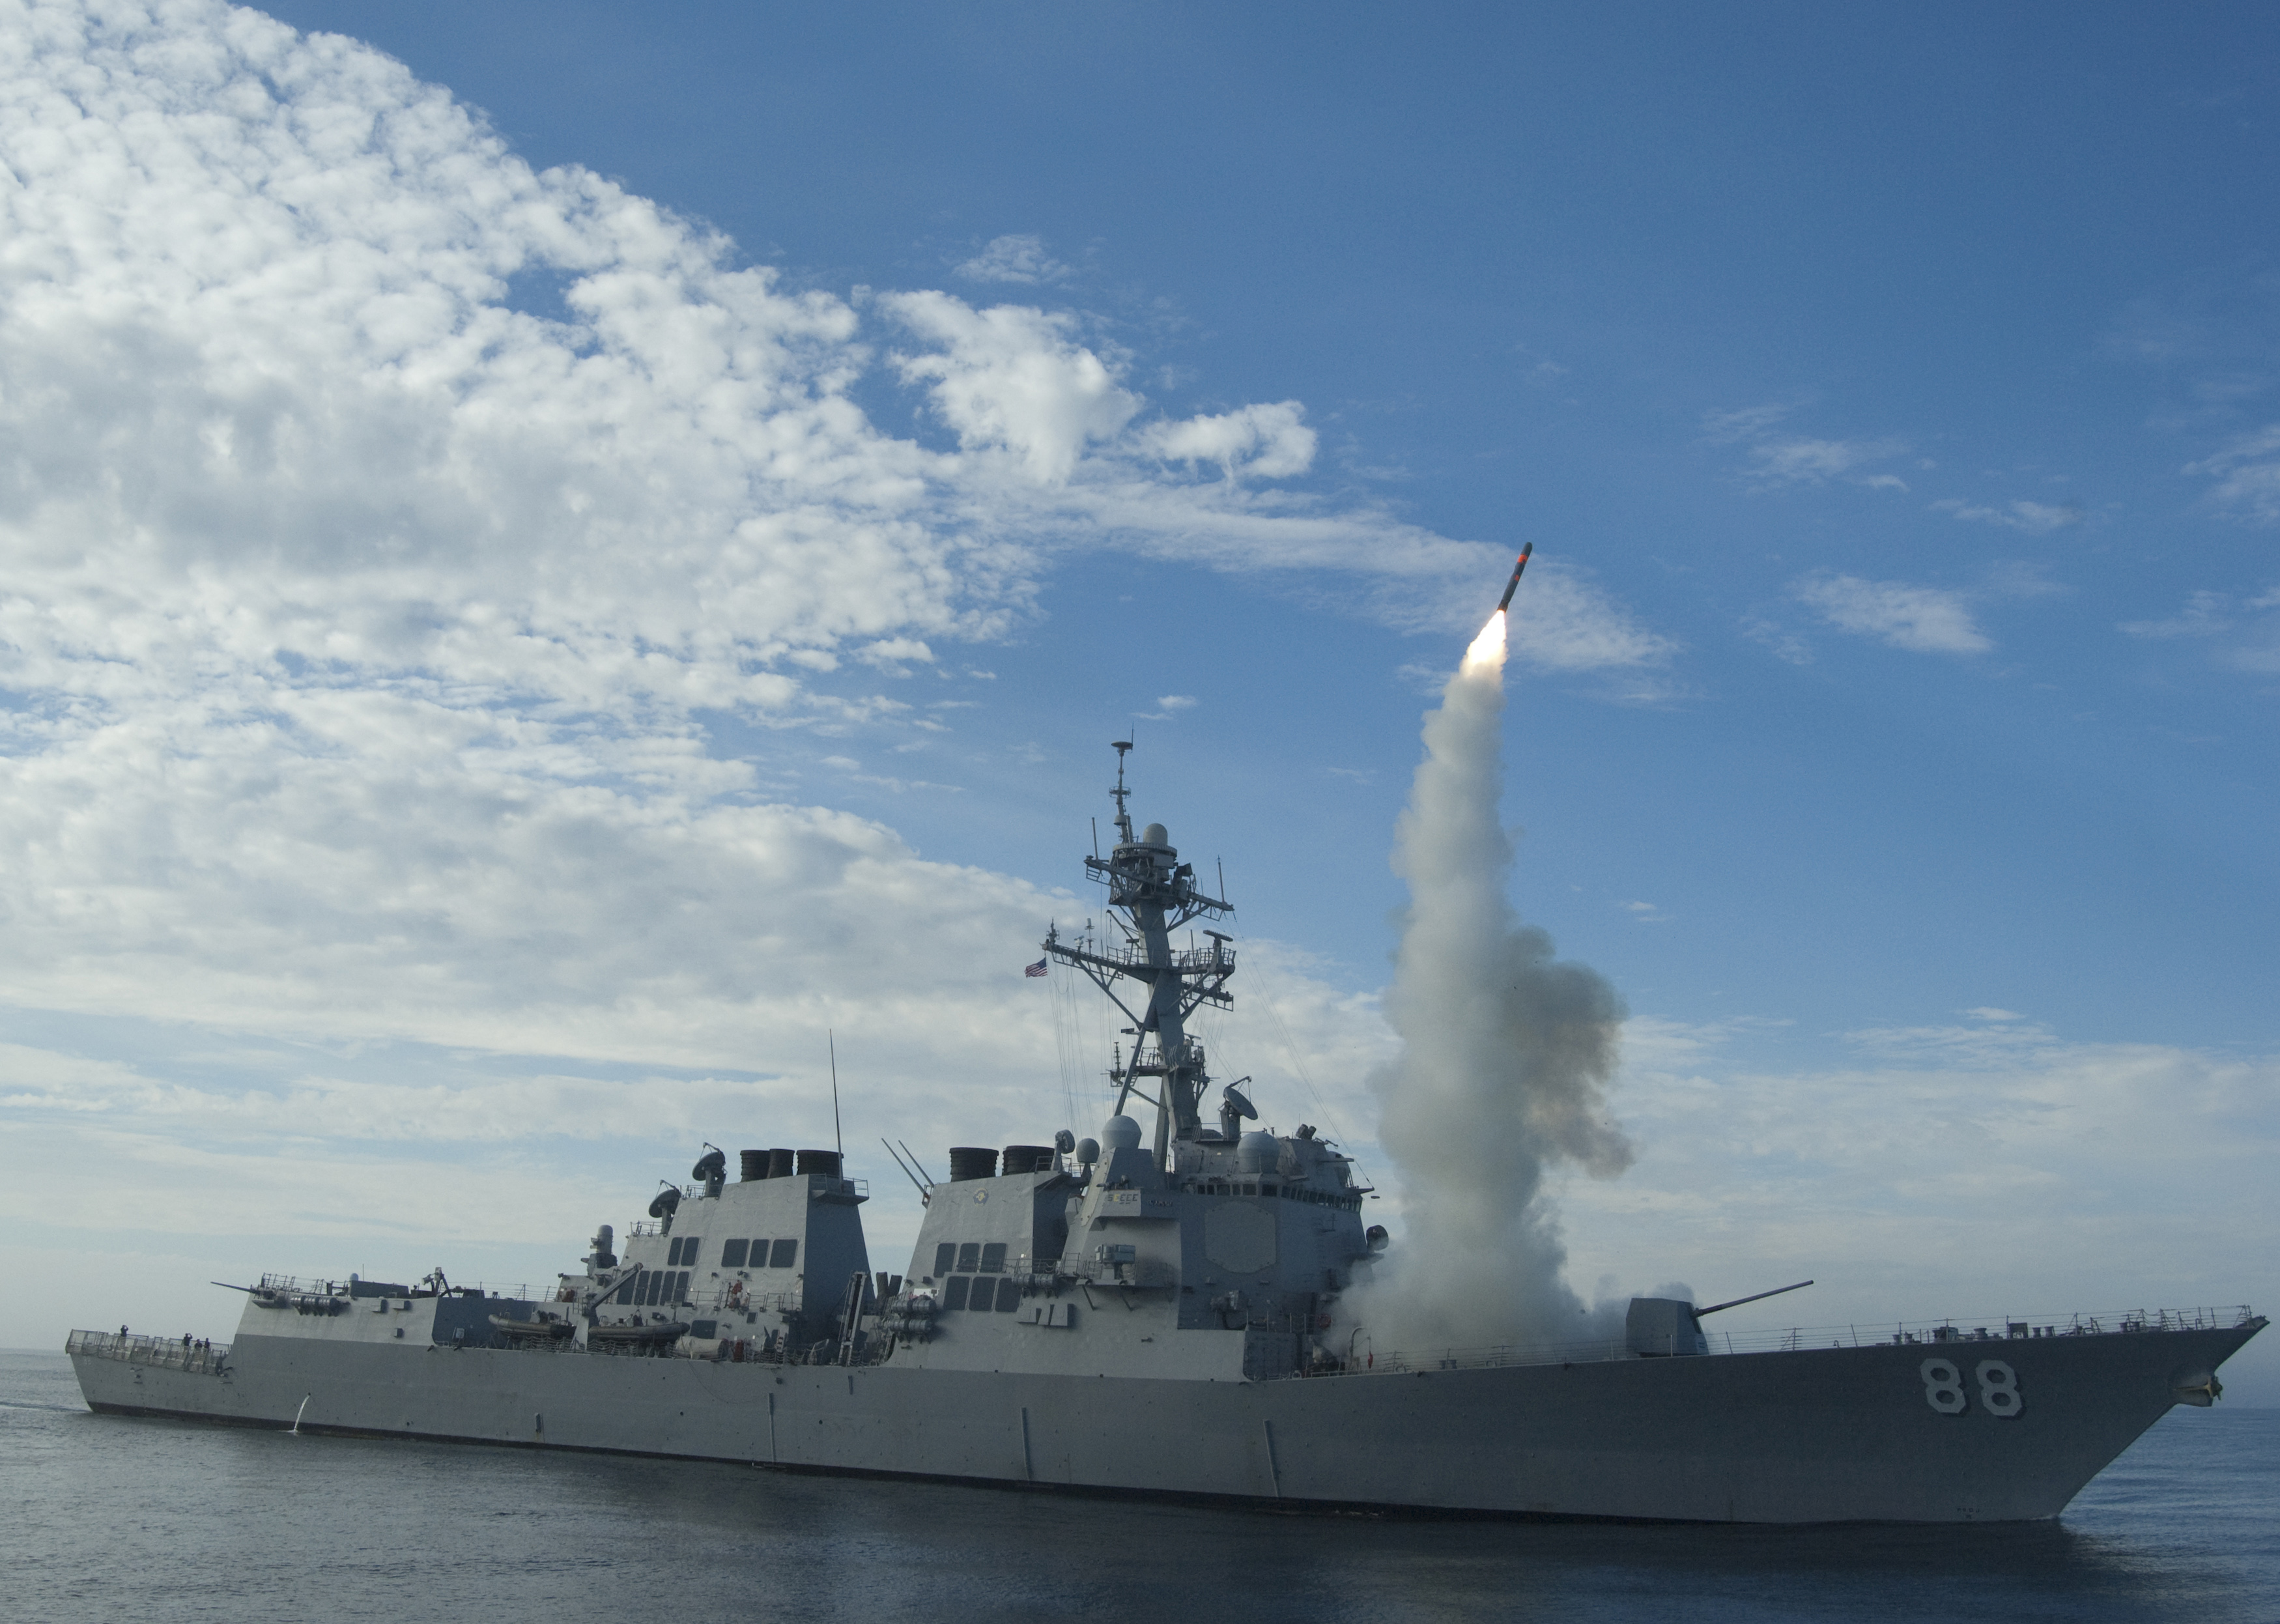 Sailors aboard the guided-missile destroyer USS Preble (DDG 88) conduct an operational tomahawk missile launch in a training area off the coast of California in this September 29, 2010 file photograph and released to Reuters on March 19, 2011. U.S. a...